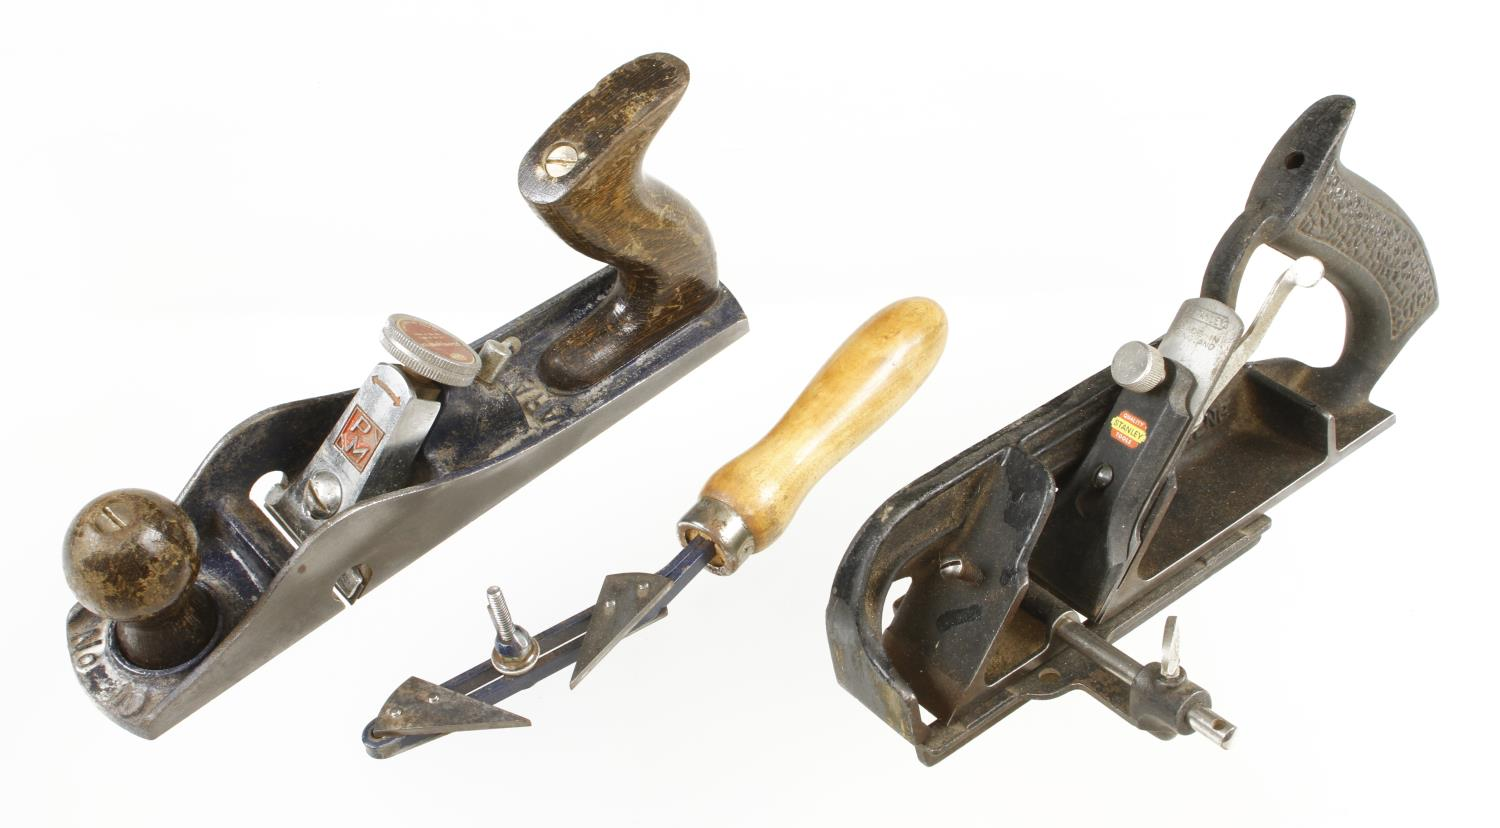 A STANLEY No 78, a PARAMO No 10 and an unused stringing and grooving tool by TECTOOL complete in